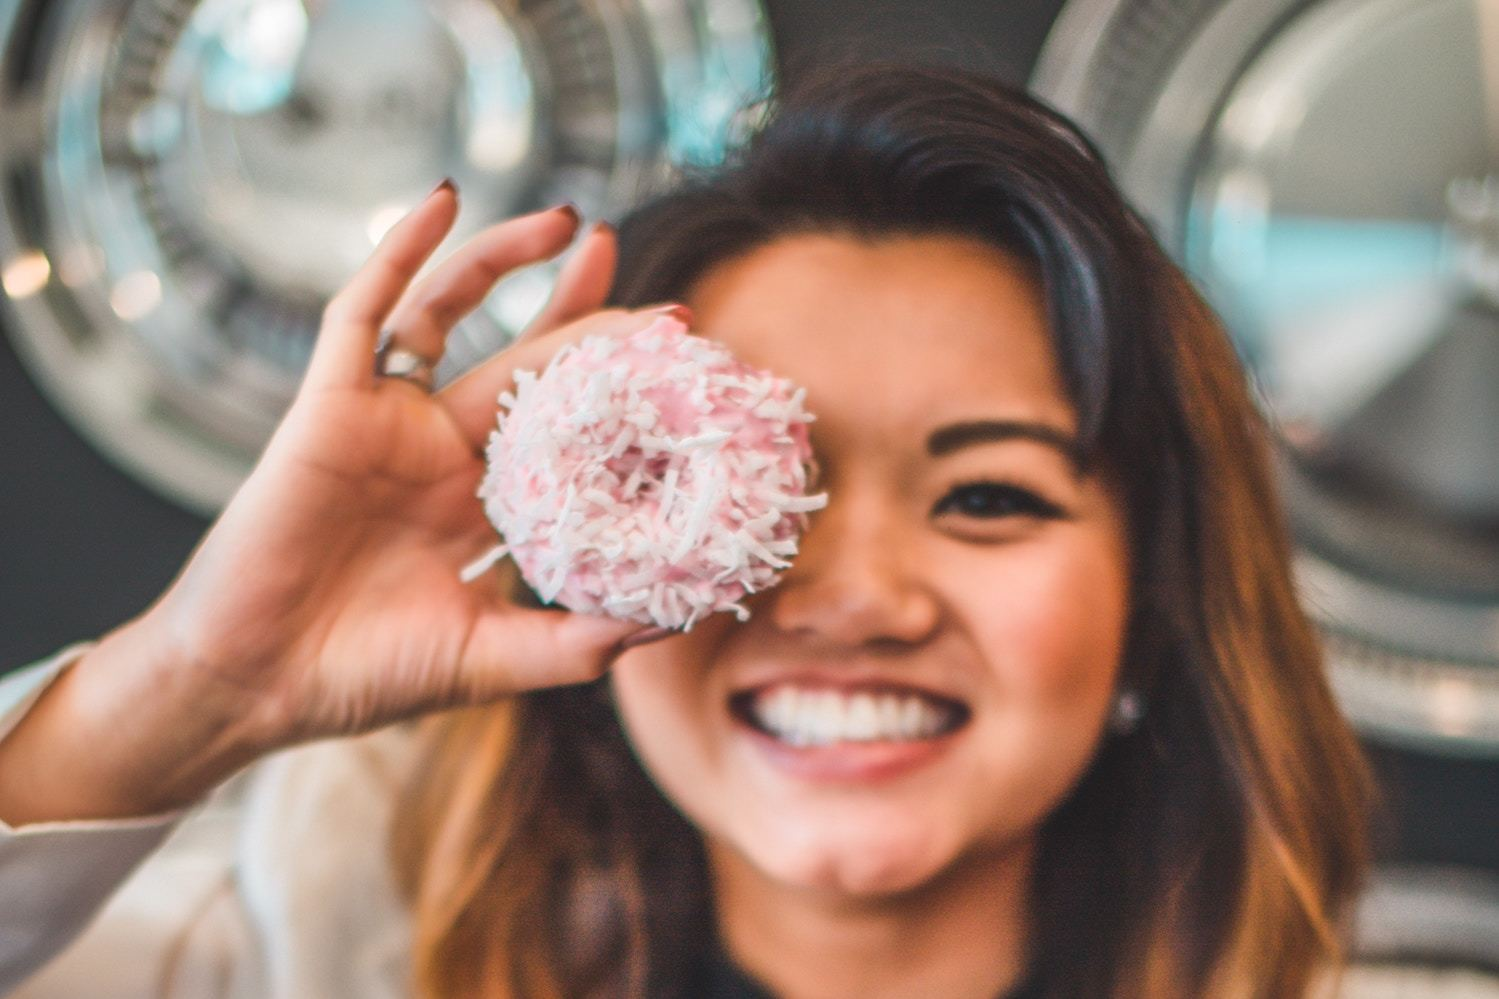 a woman poses with a pink donut